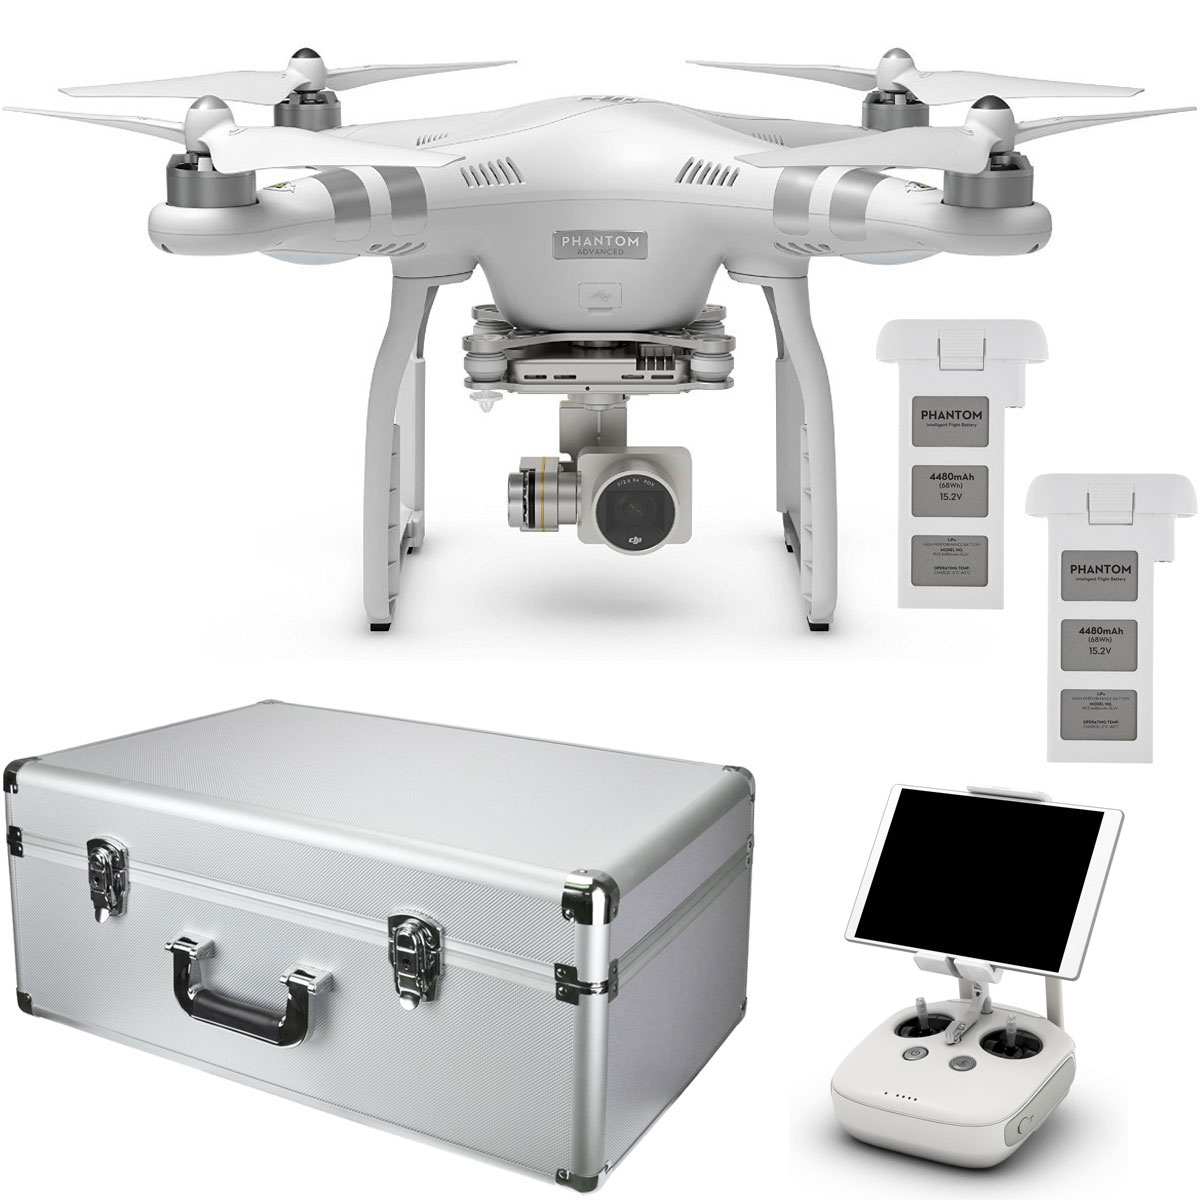 DJI Phantom 3 Advanced Quadcopter Drone with 1080p Camera & 3-Axis Gimbale with Extra Battery and Custom Aluminum Case